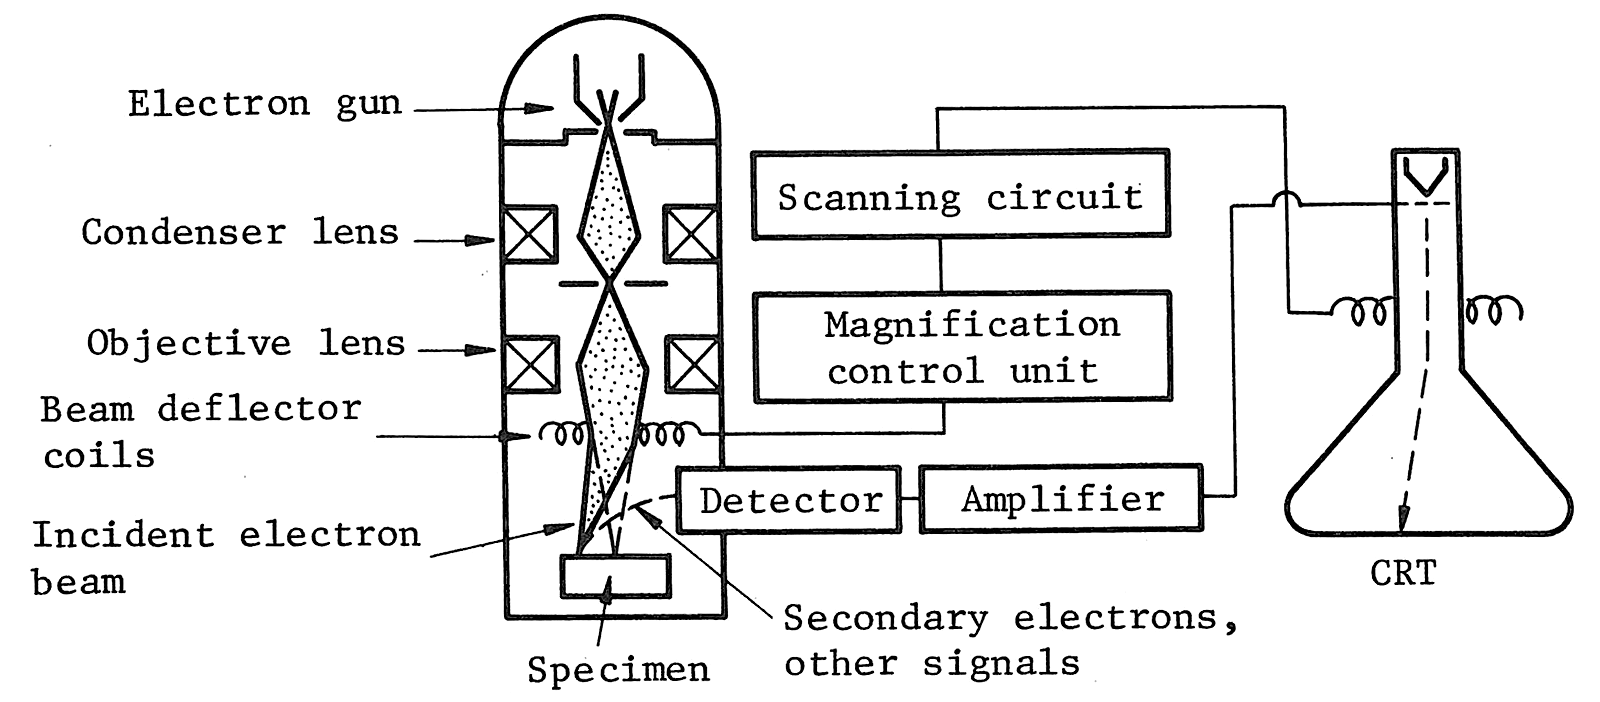 Scanning electron microscopy sem at home semprinicple block diagram showing the working principle of scanning electron microscopes ccuart Image collections